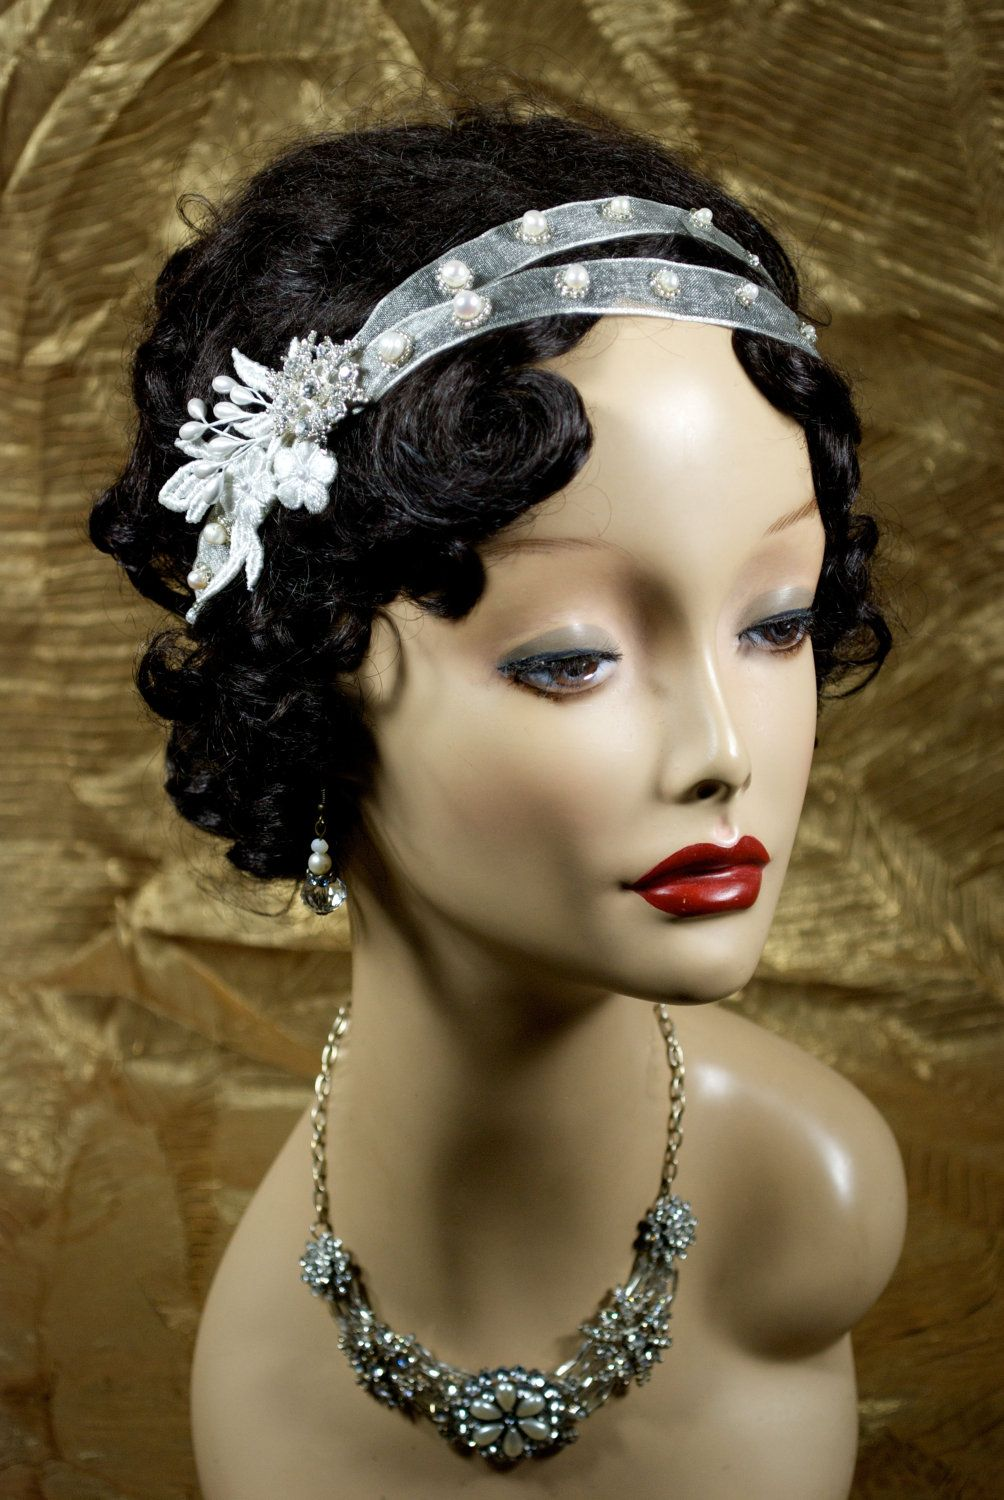 twenties style headbands - Google Search